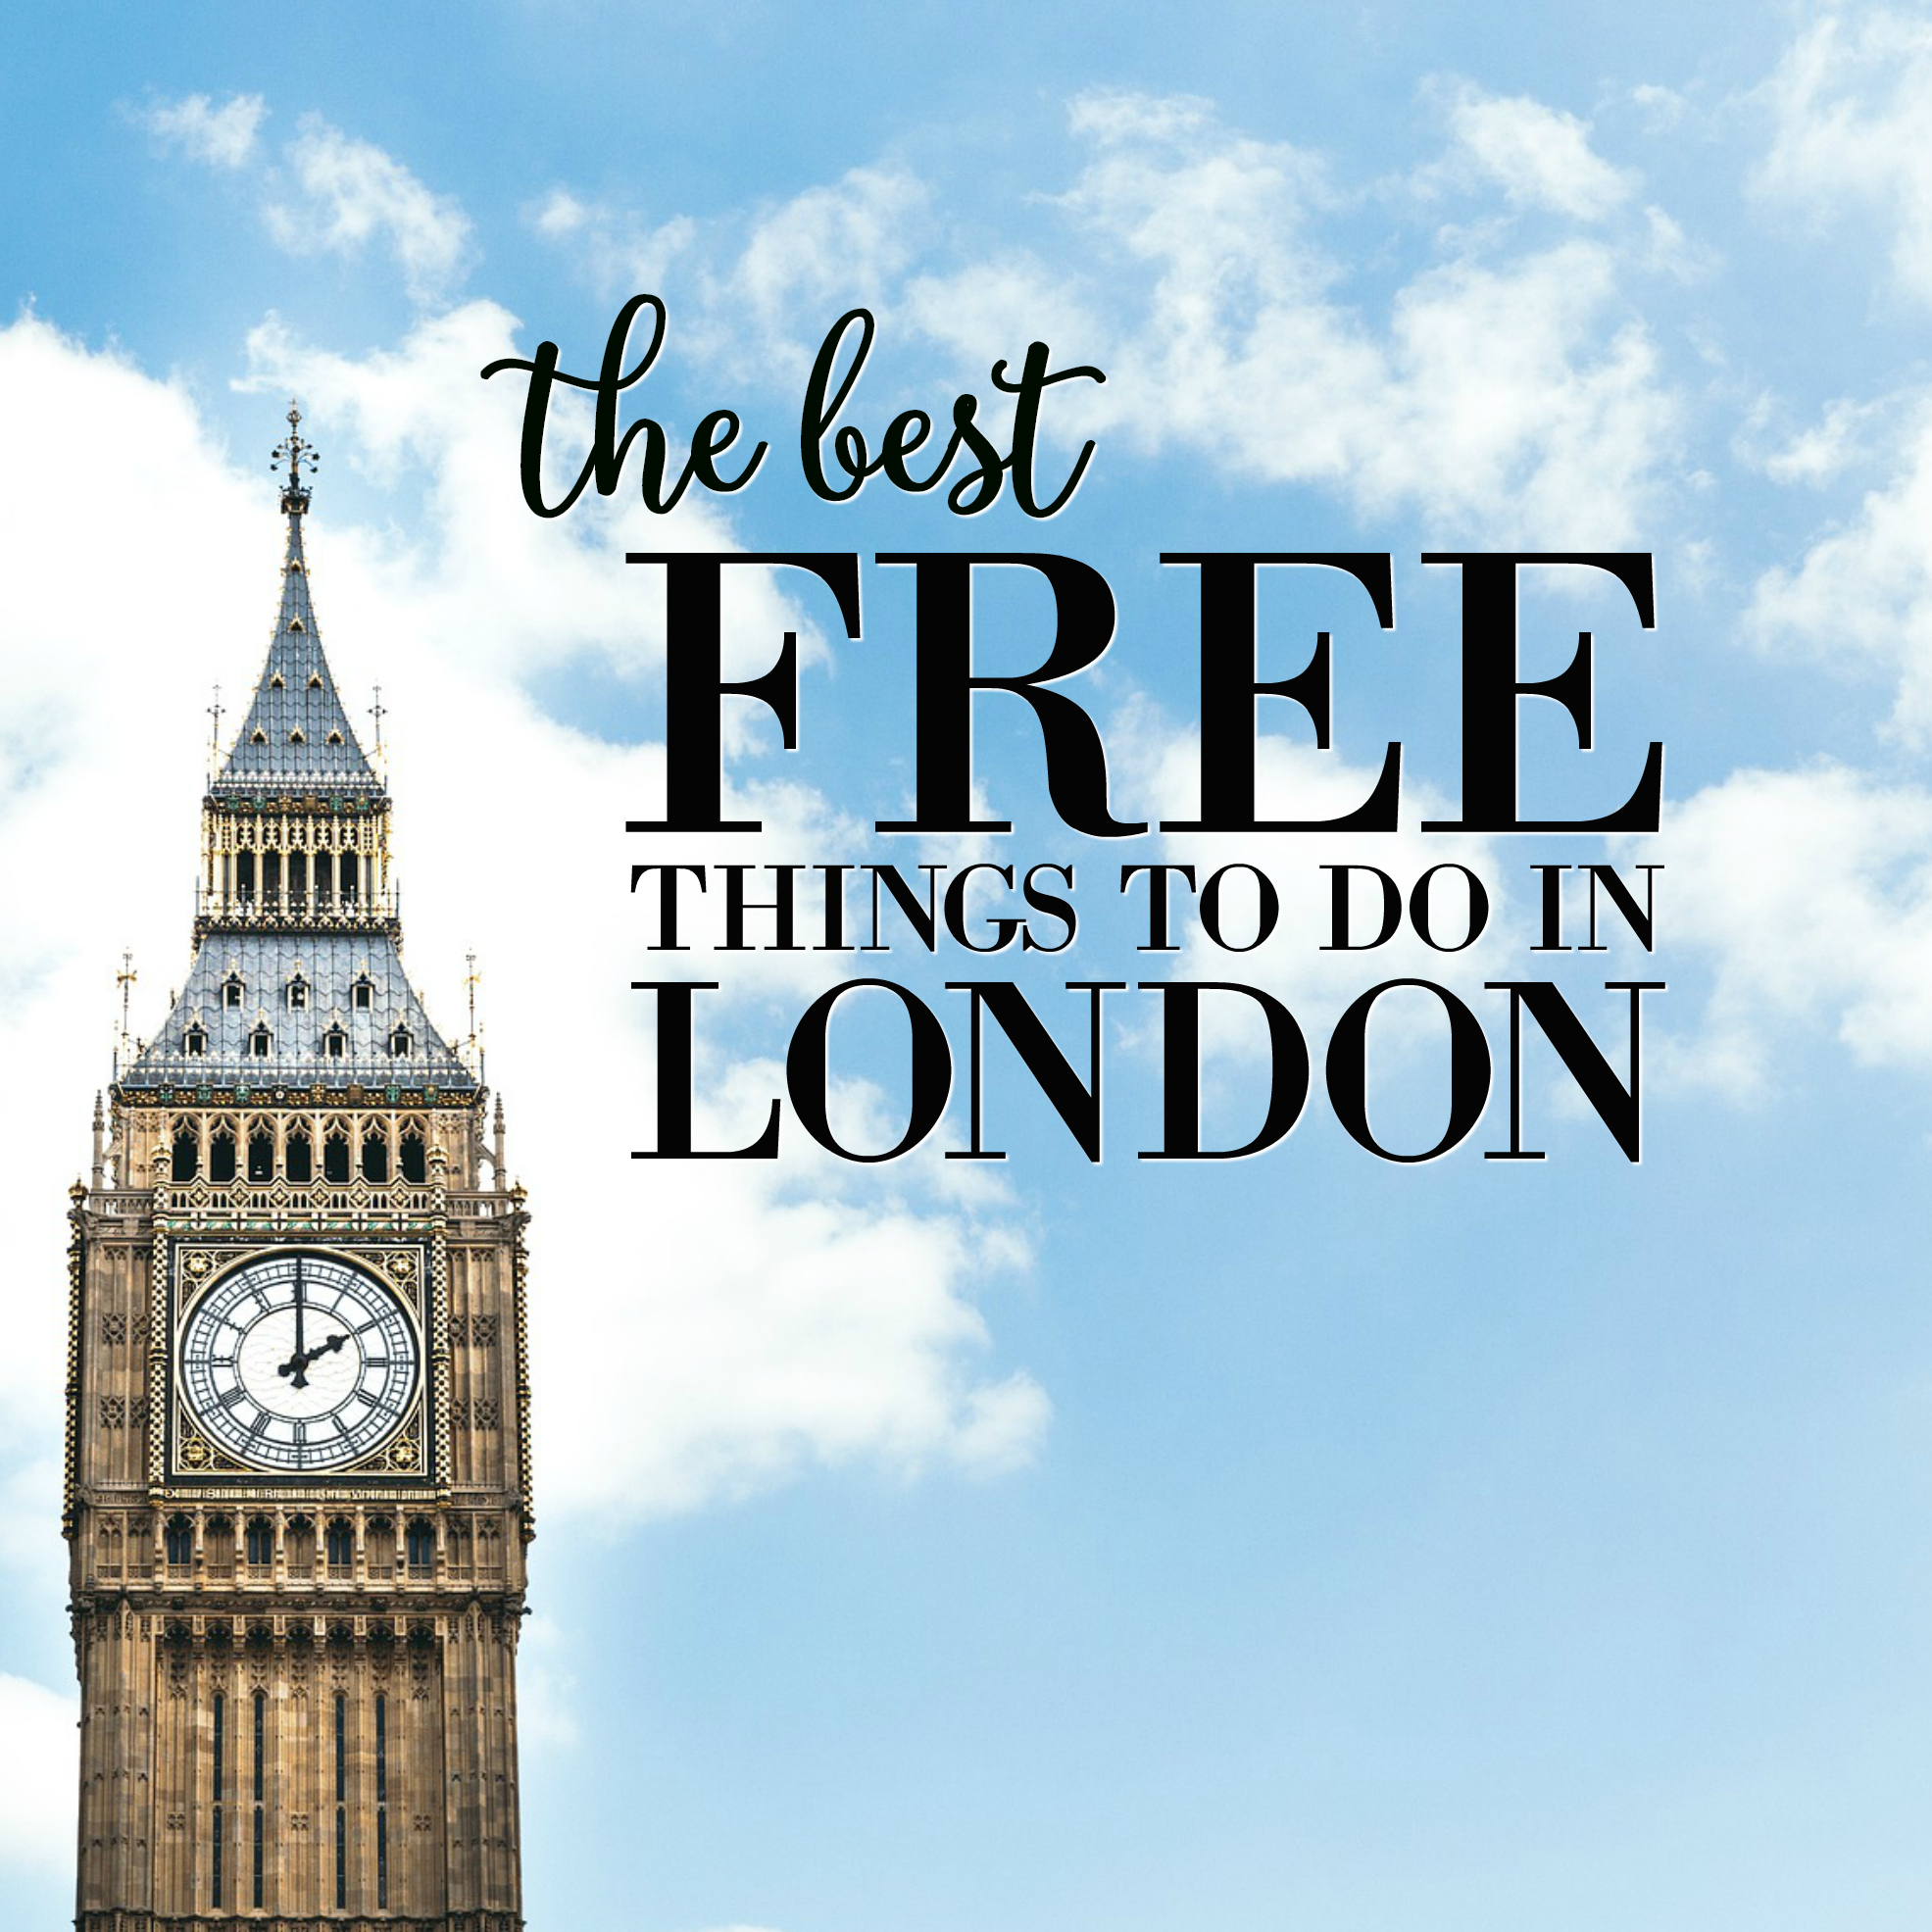 Find out what the best free activities, museums and attracts are in beautiful London with this handy travel guide. Perfect for the budget conscious traveller!